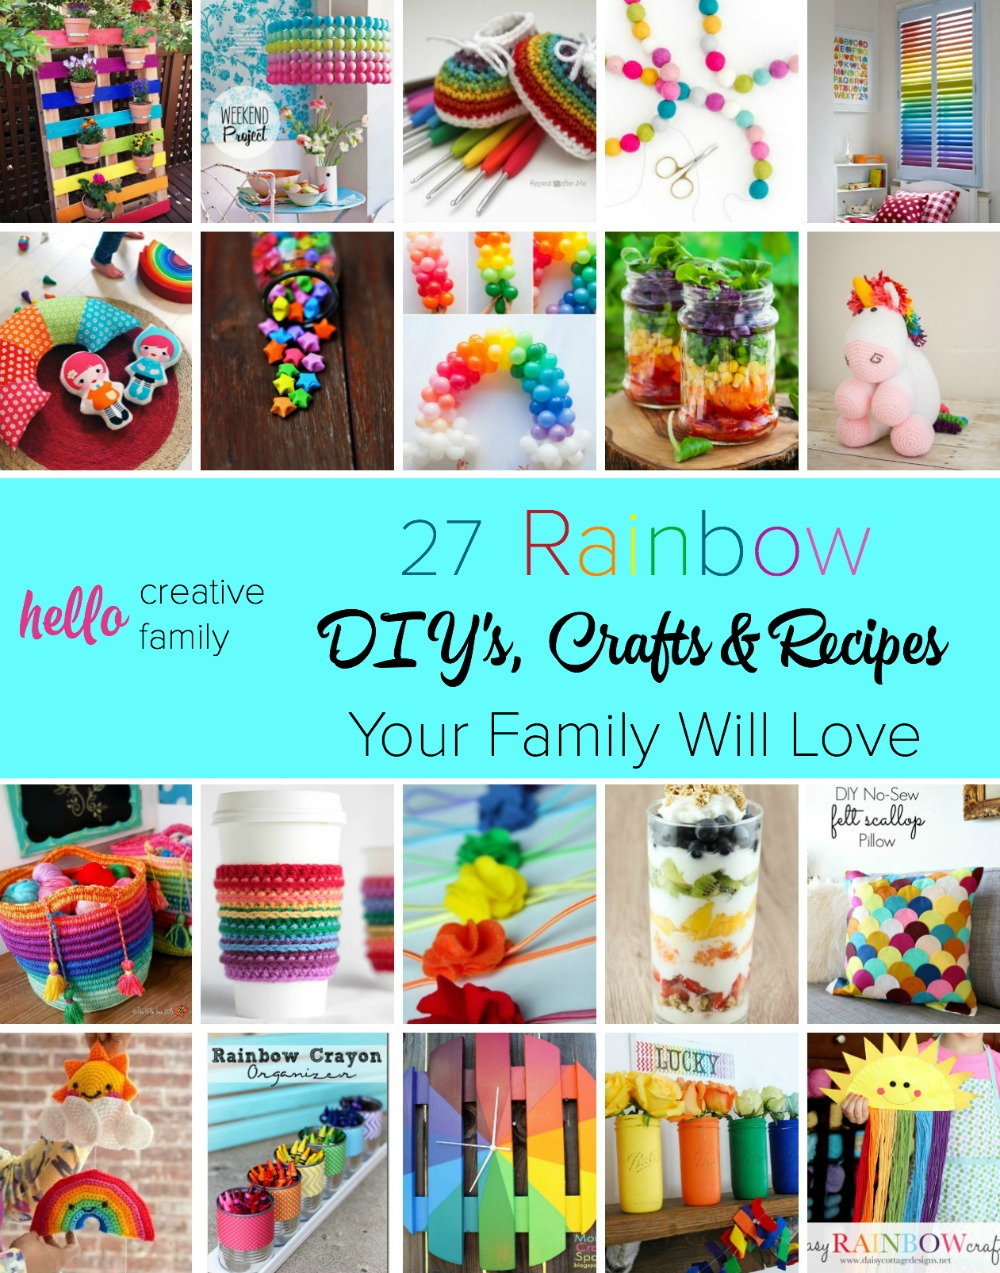 27 Rainbow Crafts Diy Projects And Recipes Your Family Will Love